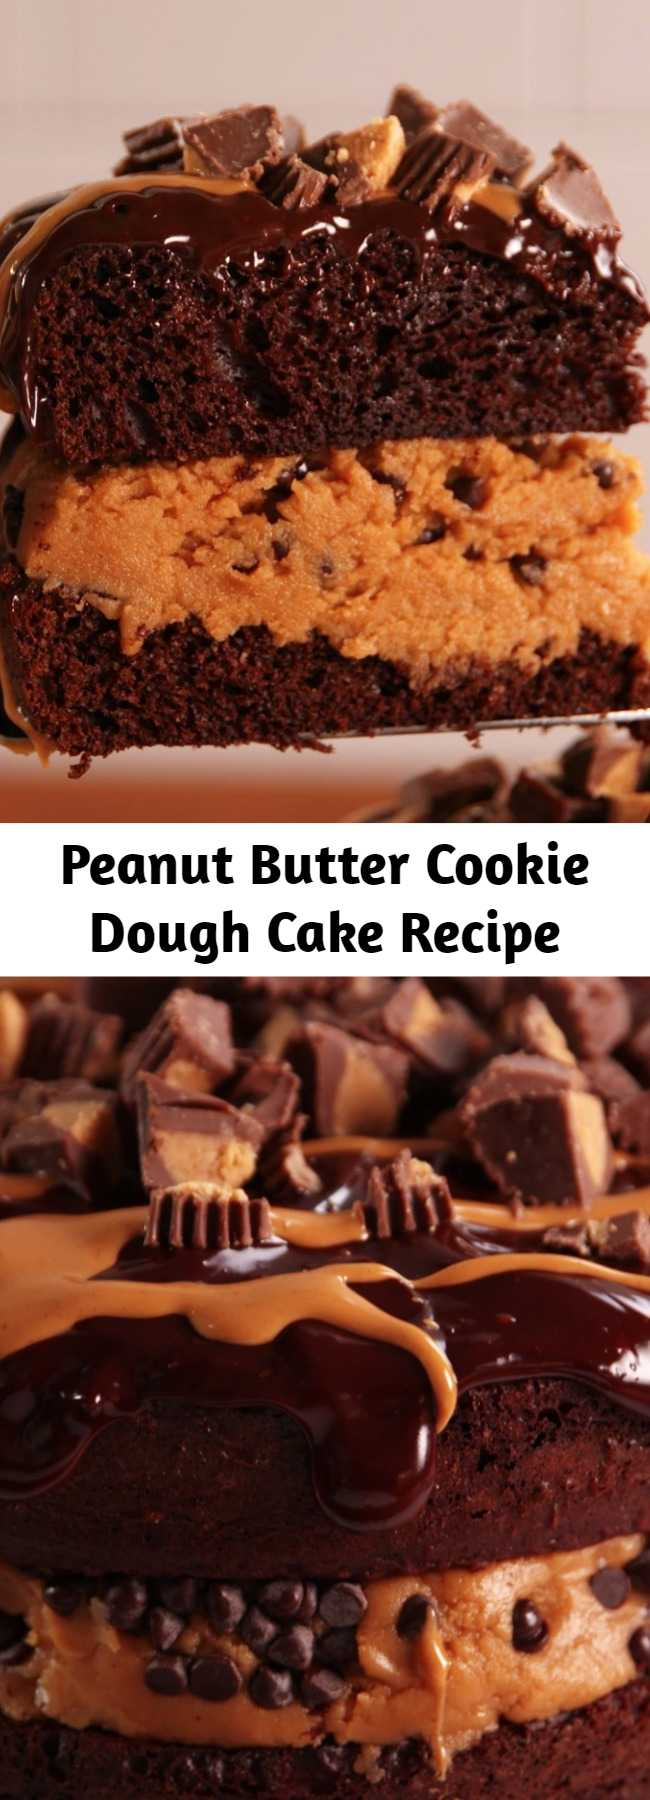 Peanut Butter Cookie Dough Cake Recipe - If you like shoveling mounds of cookie dough into your face, you're going to love this cake. This mashup cake squeezes layers of peanut butter cookie dough in between layers of chocolate cake and it's as amazing as it sounds.